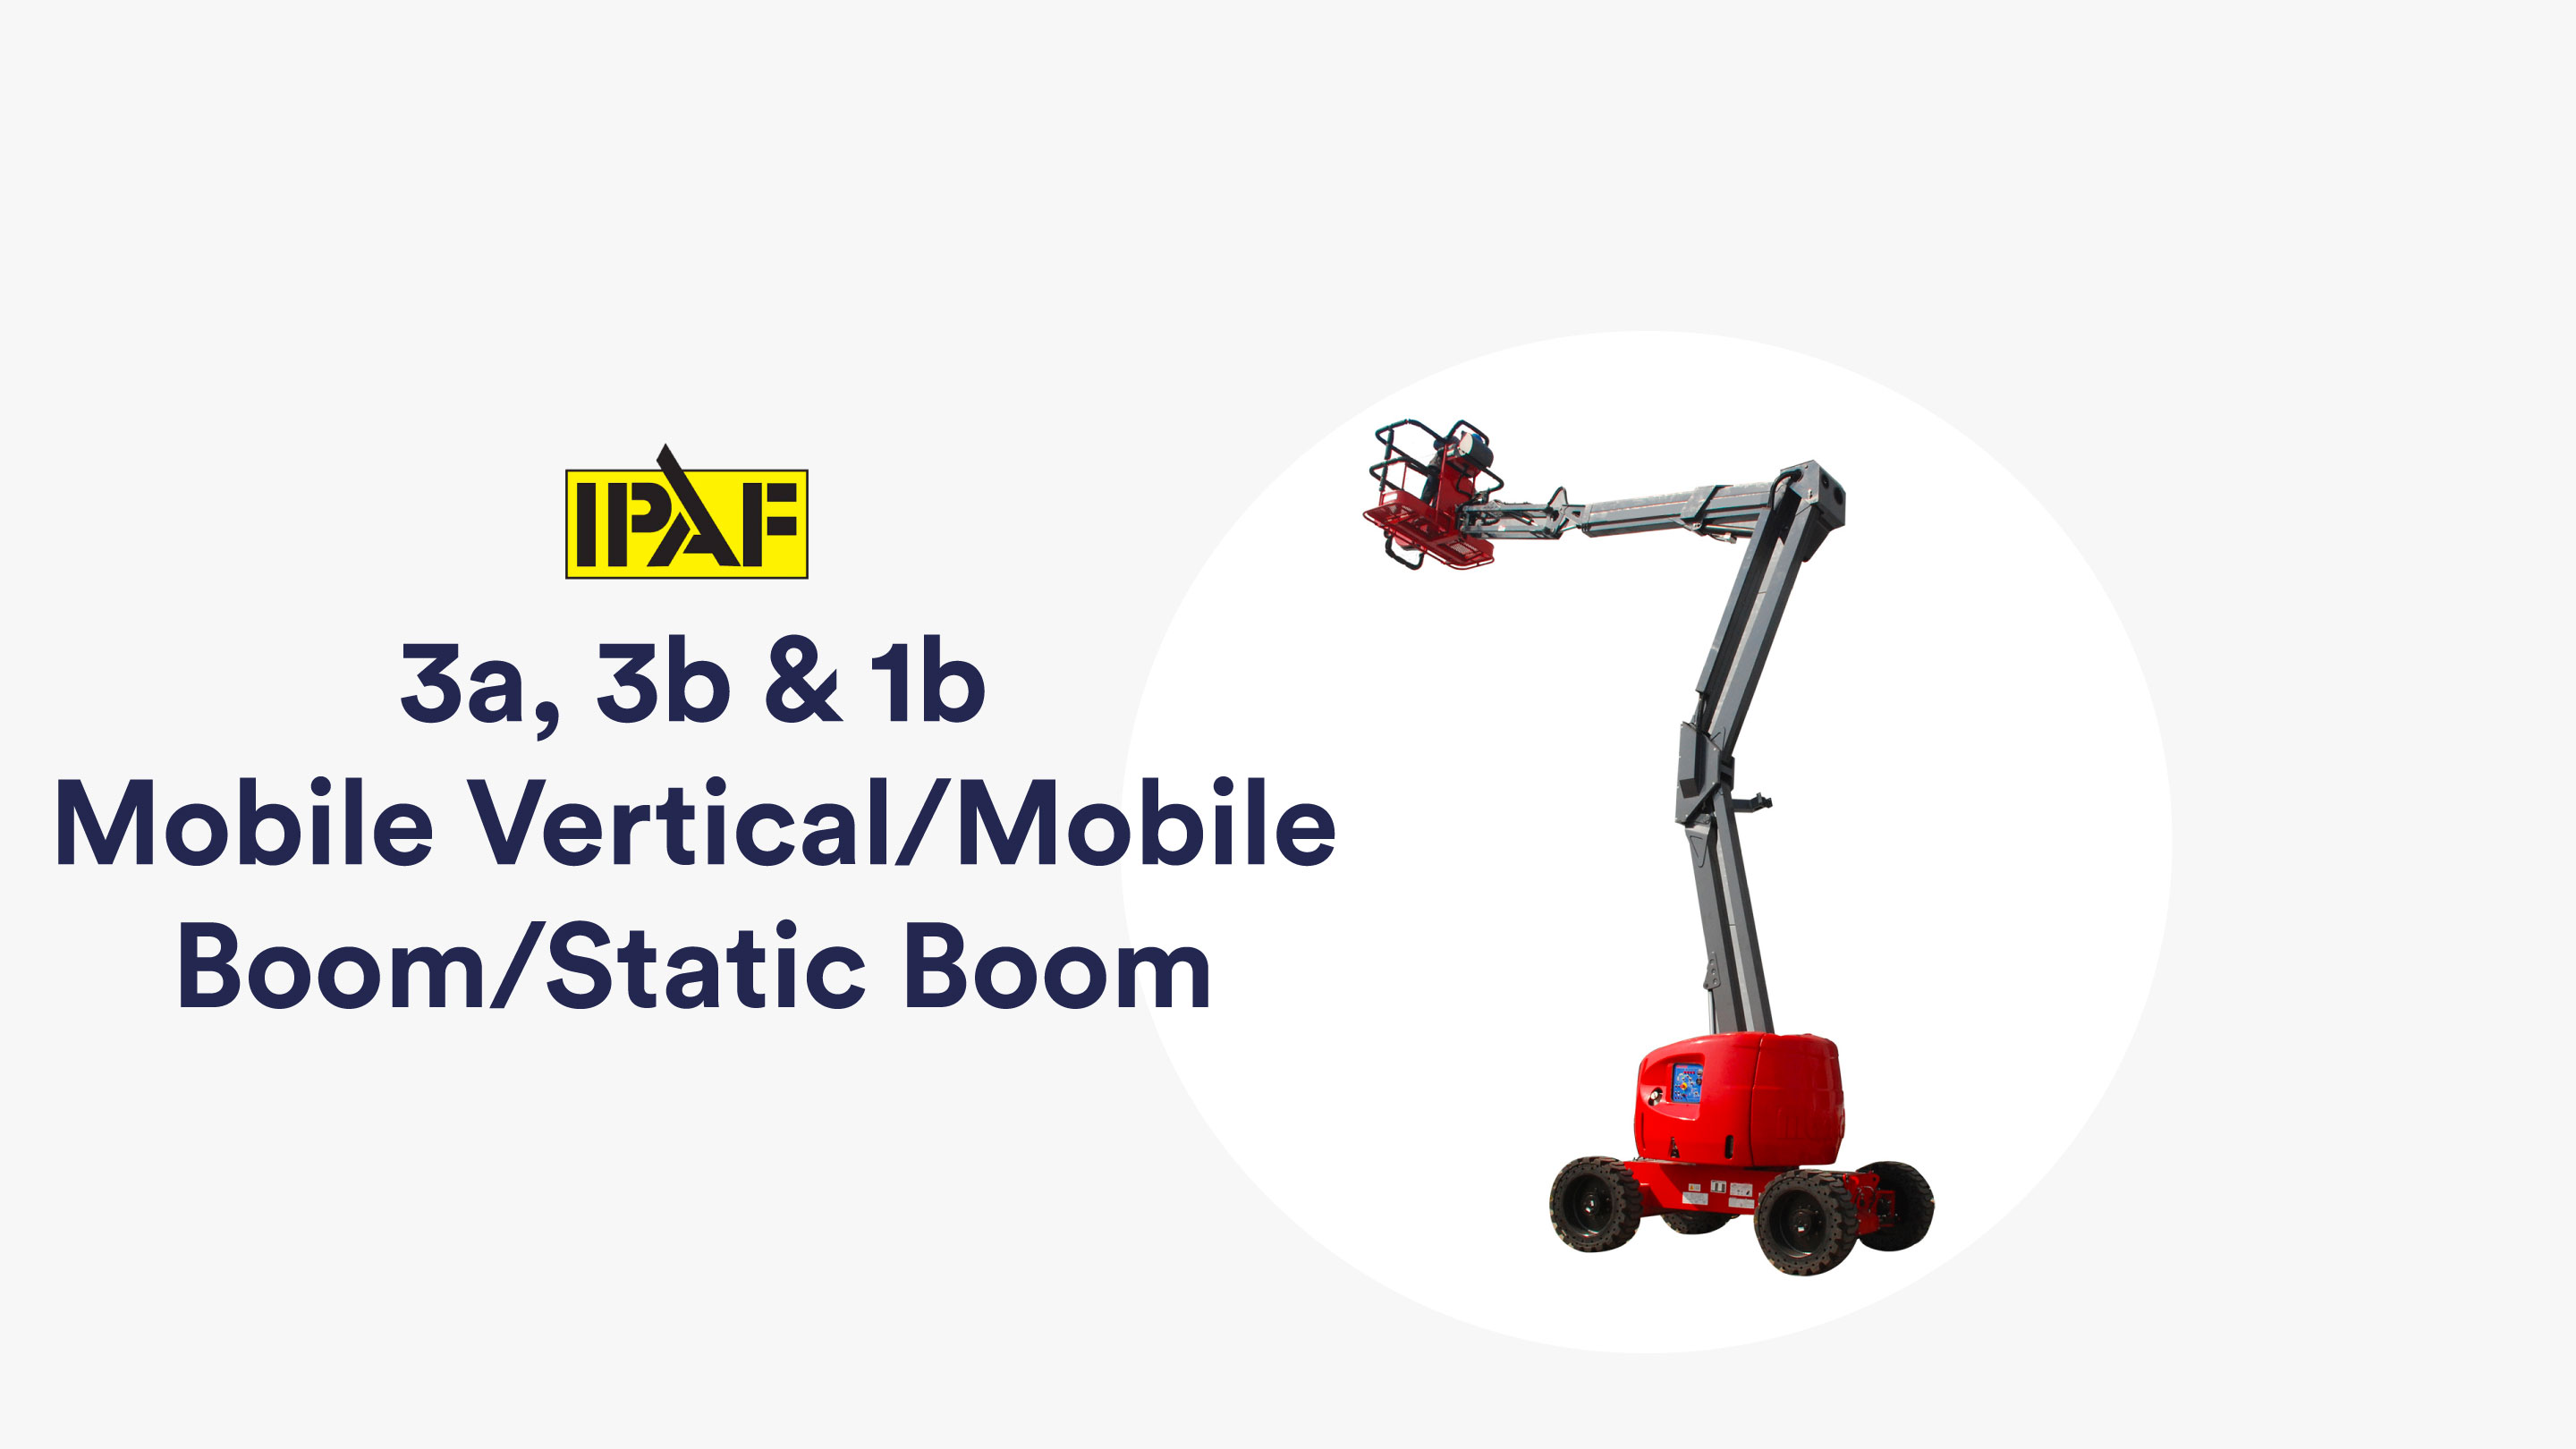 ipaf_3a_3b_1b_mobile_vertical_mobile_boom_static_boom_training_course_stoke_on_trent.jpg